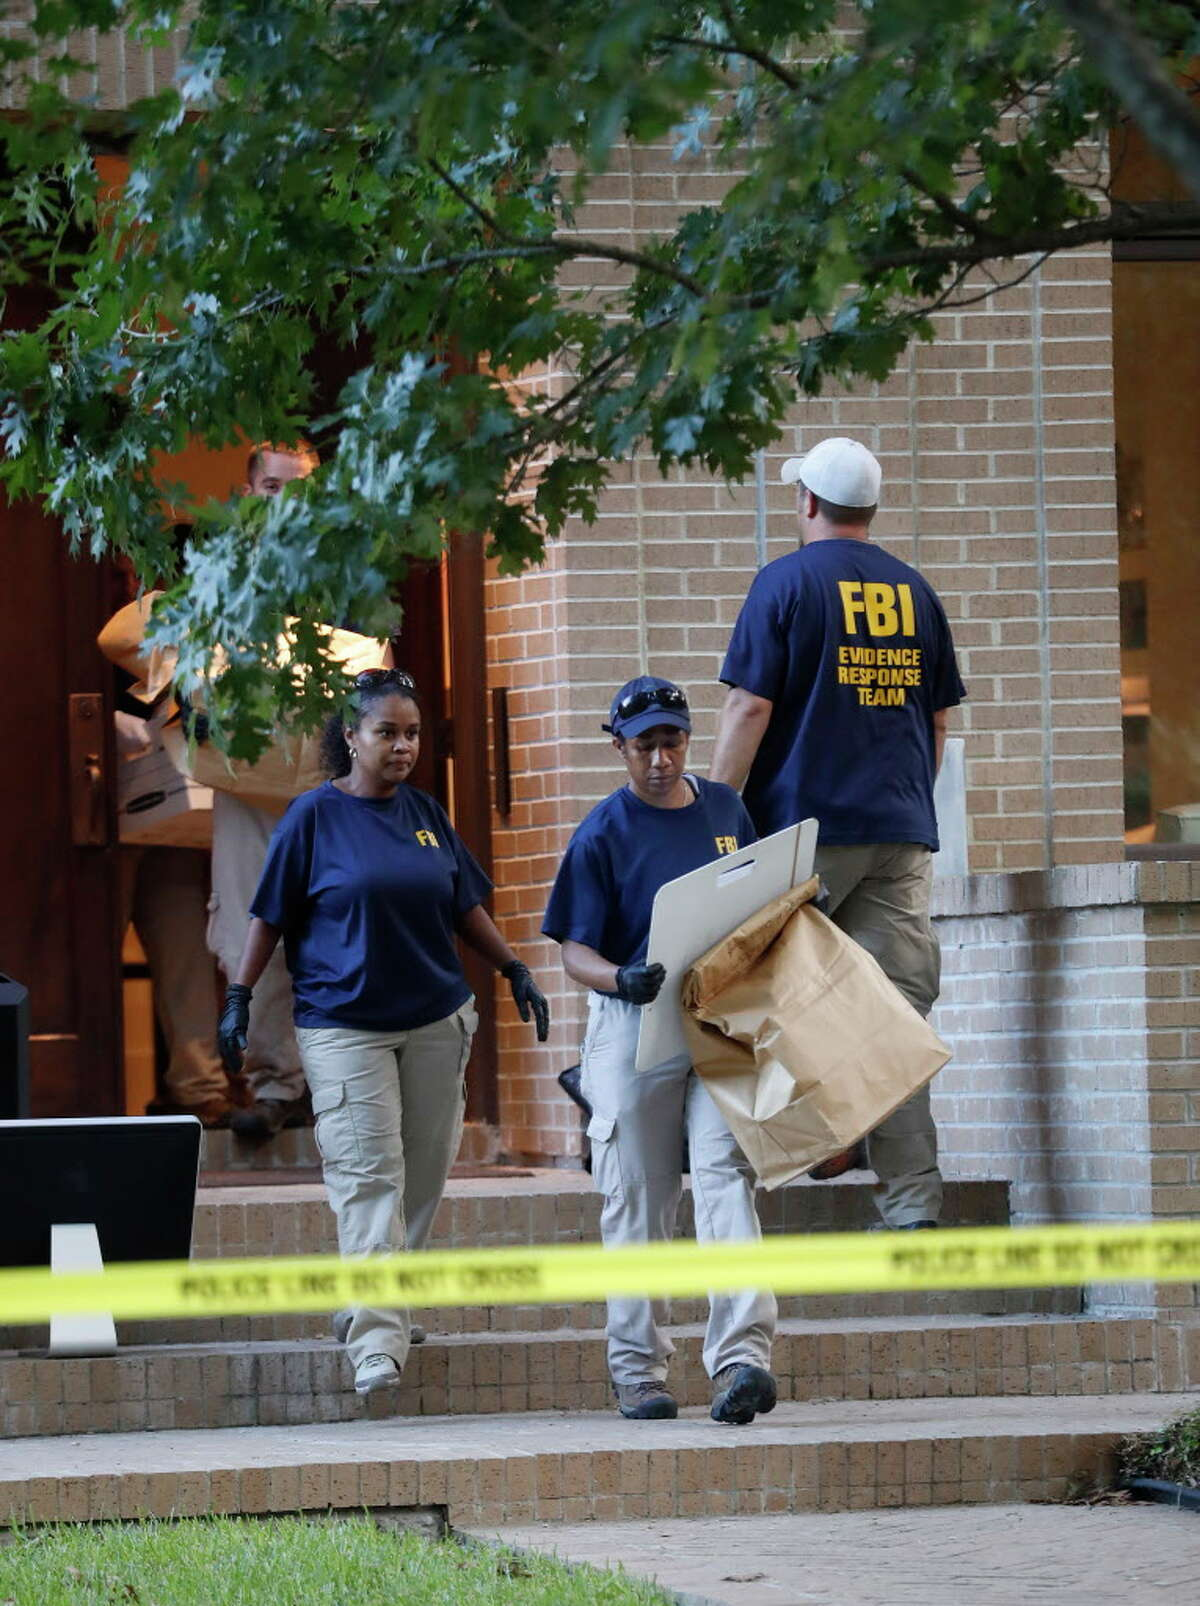 FBI agents take bags of evidence out of a house at 2025 Albans, Monday, Aug. 21, 2017, in Houston. Earlier in the day, the ATF, FBI and Houston Police conducted a controlled explosion at the house next door at 2021 Albans.